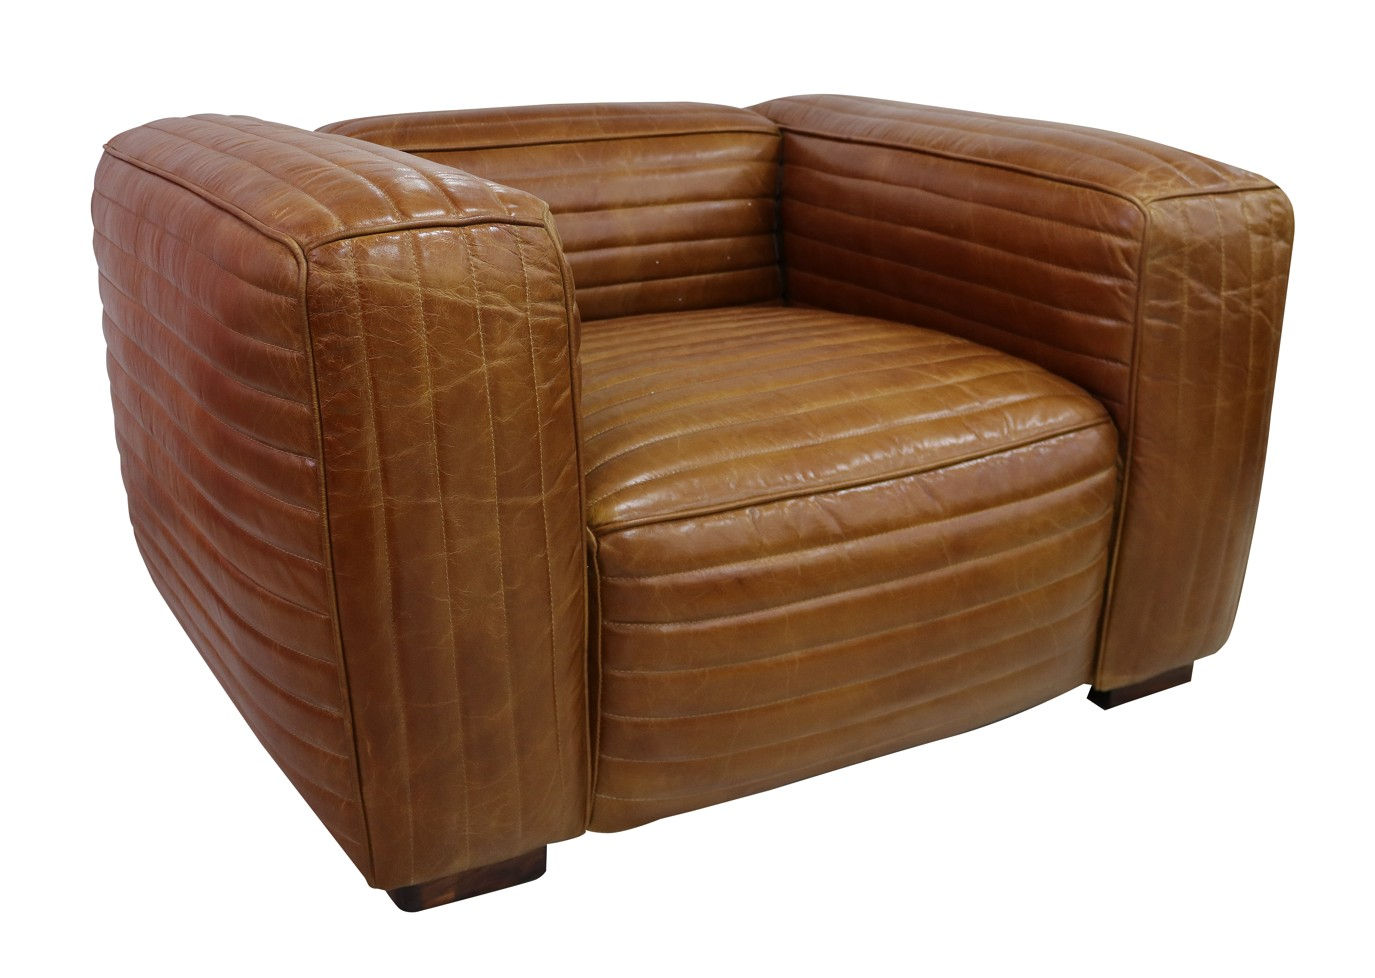 belgrave vintage luxury retro distressed leather armchair tan